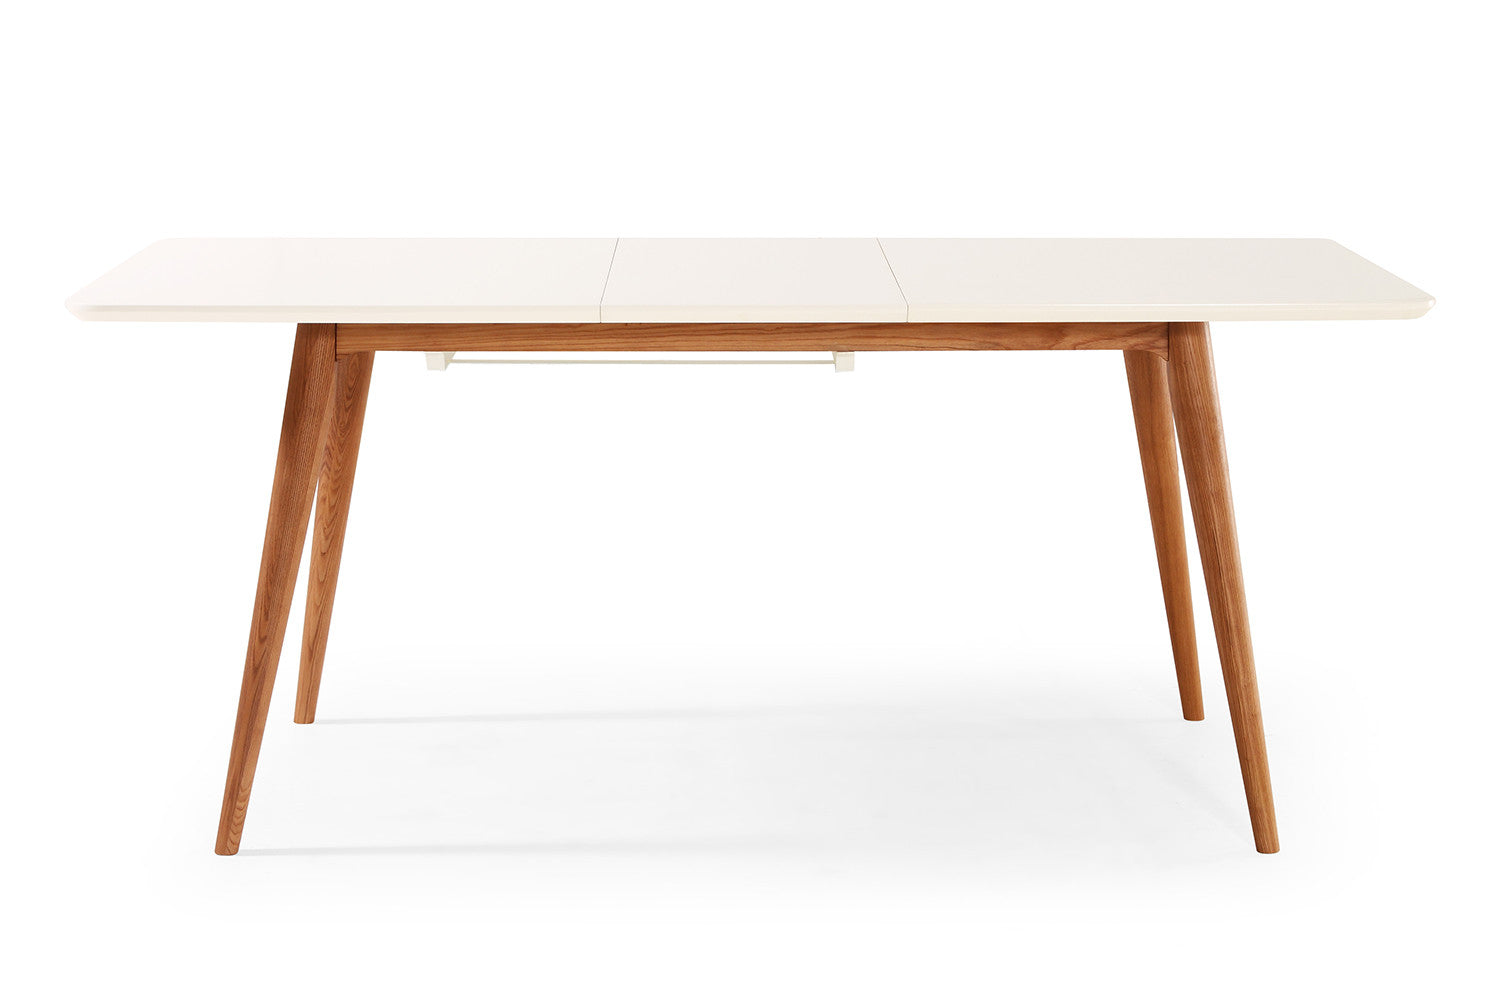 Table de salle manger extensible scandinave wyna dewarens for Architecture scandinave